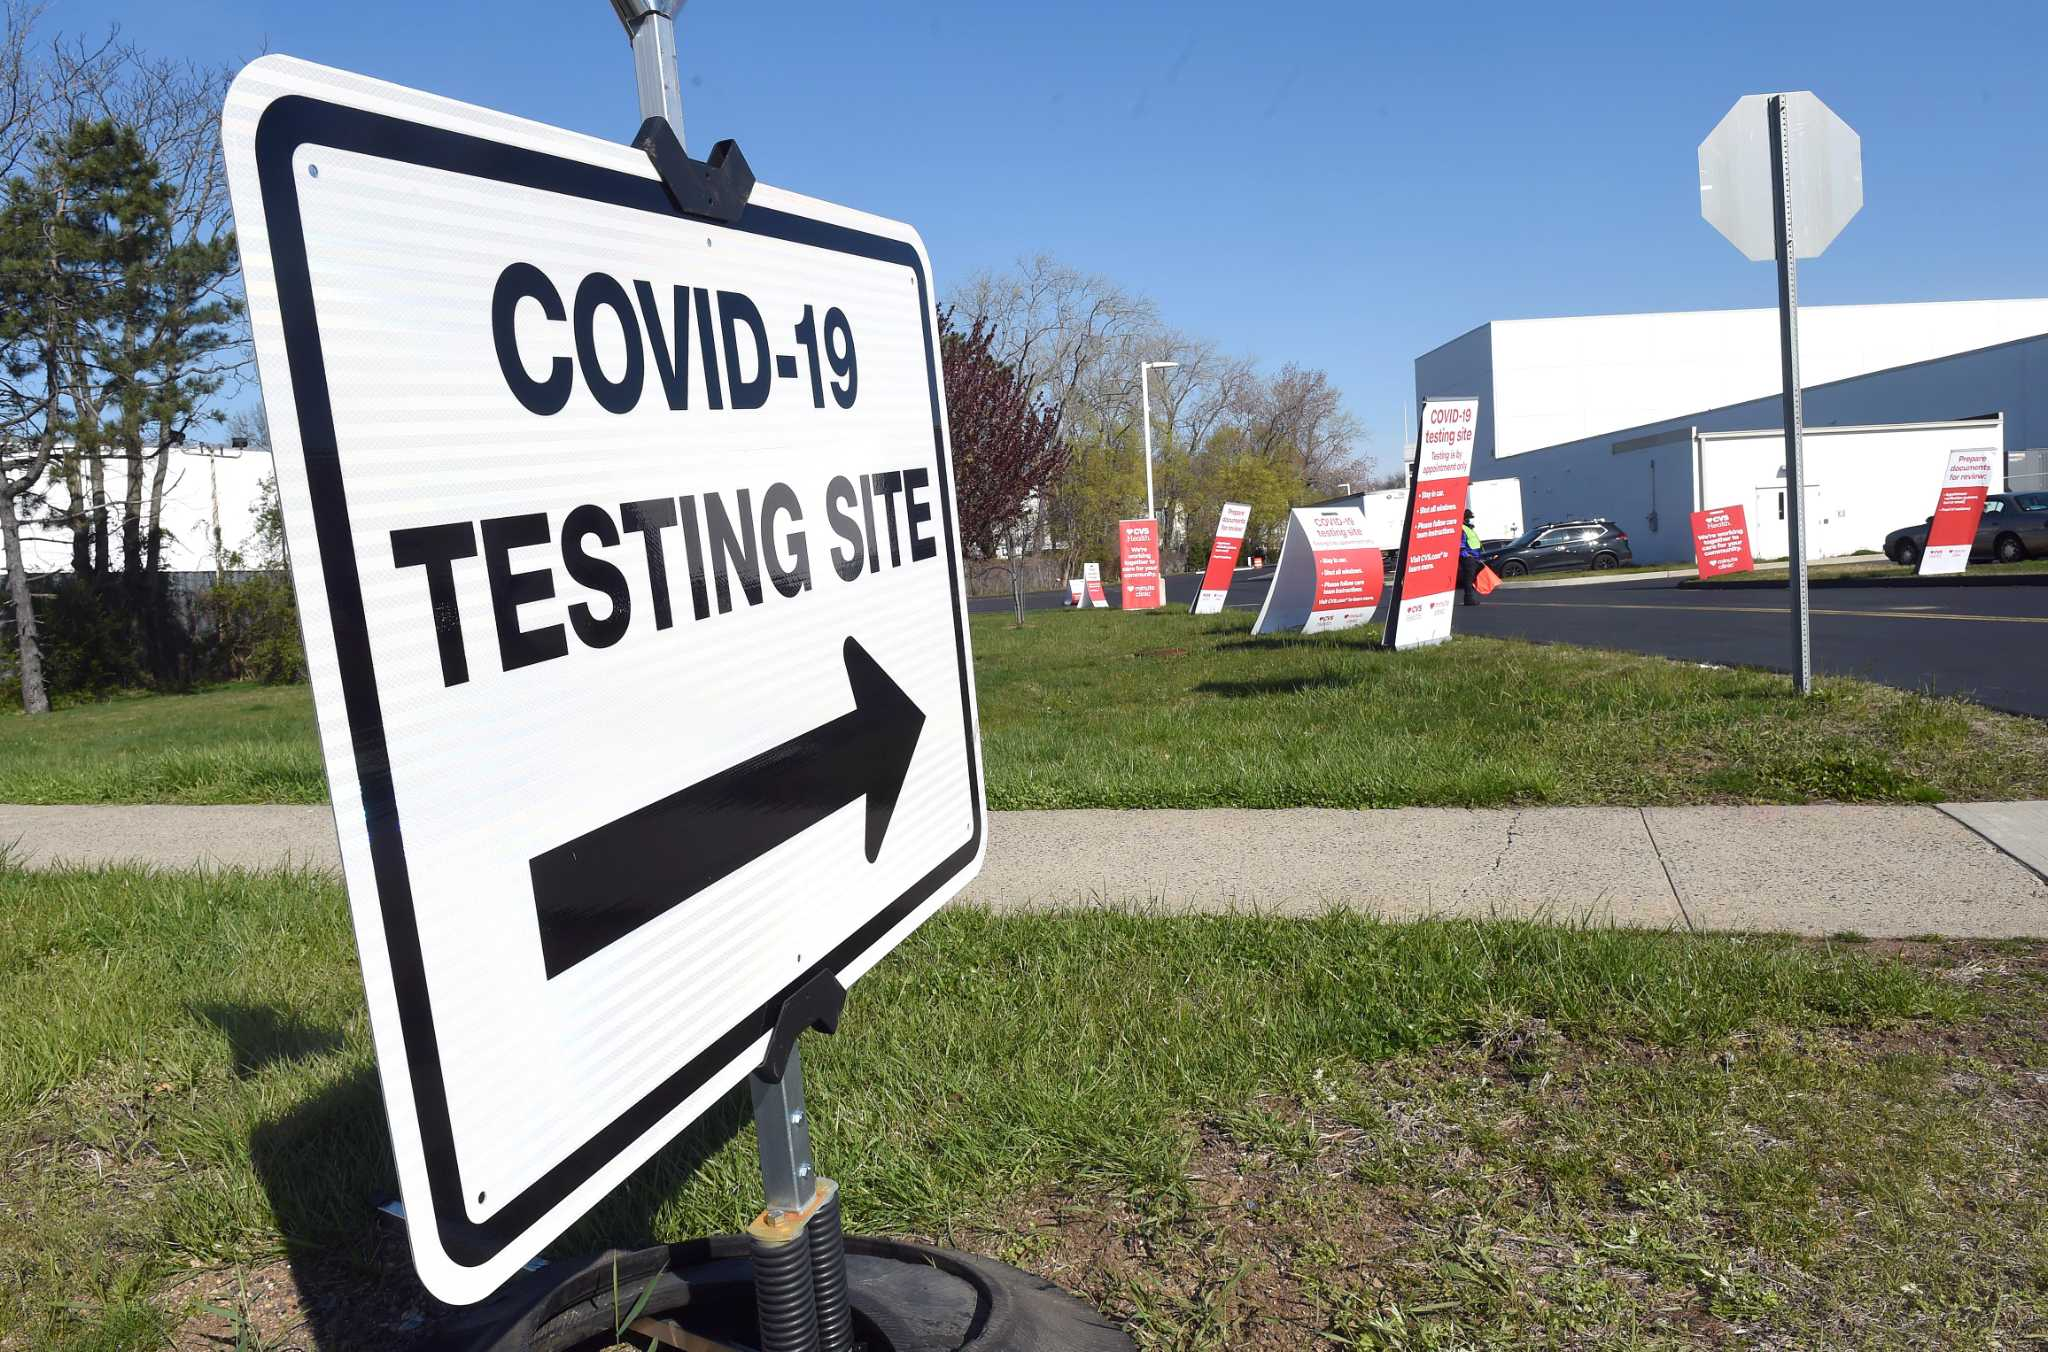 Two More Coronavirus Testing Sites Open Today In New Haven Hard Hit Neighborhoods 1 More In Works